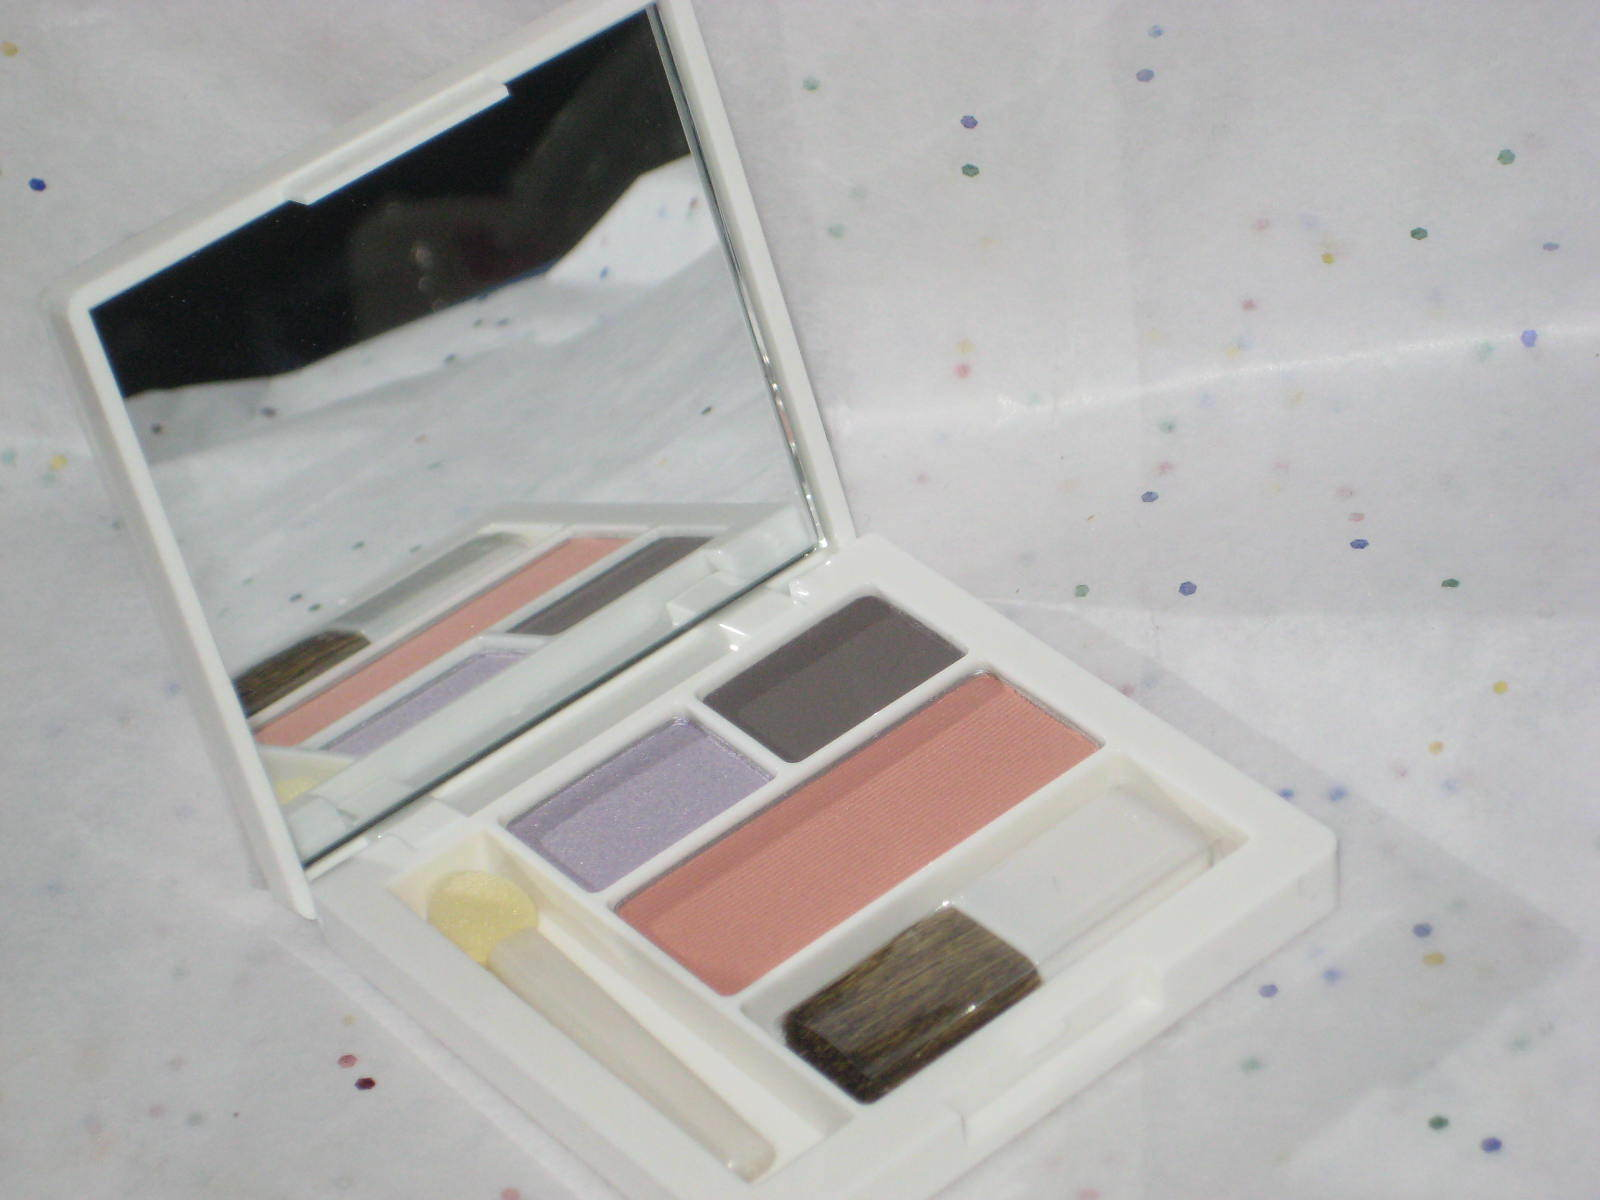 Primary image for Clinique Colour Surge Eye Shadow in Blackberry Frost and Slate with Pink Blush